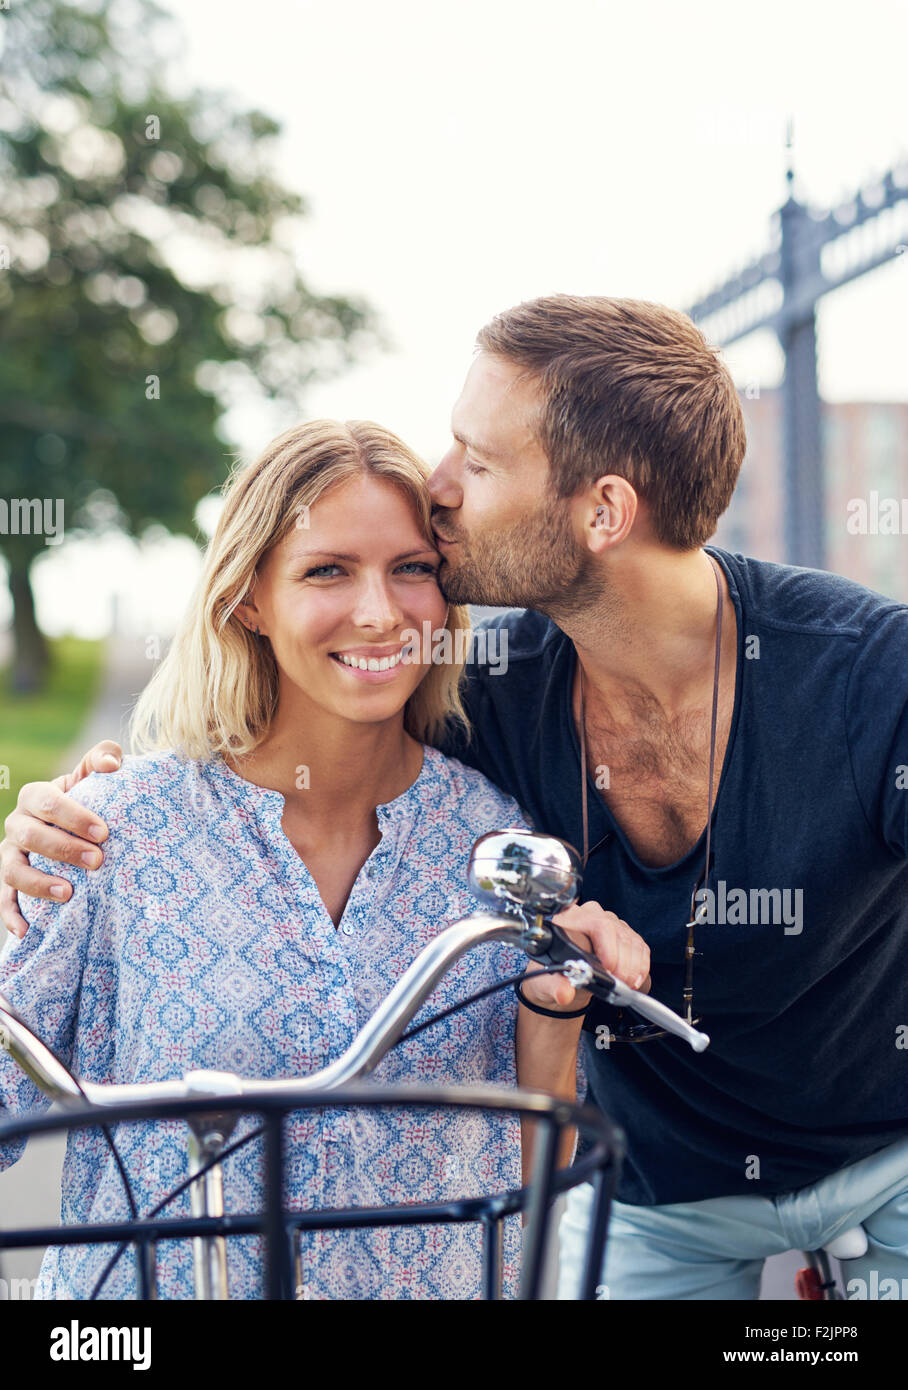 Affectionate young man kissing his girlfriend on the forehead as they enjoy a summer day in the fresh air on their - Stock Image